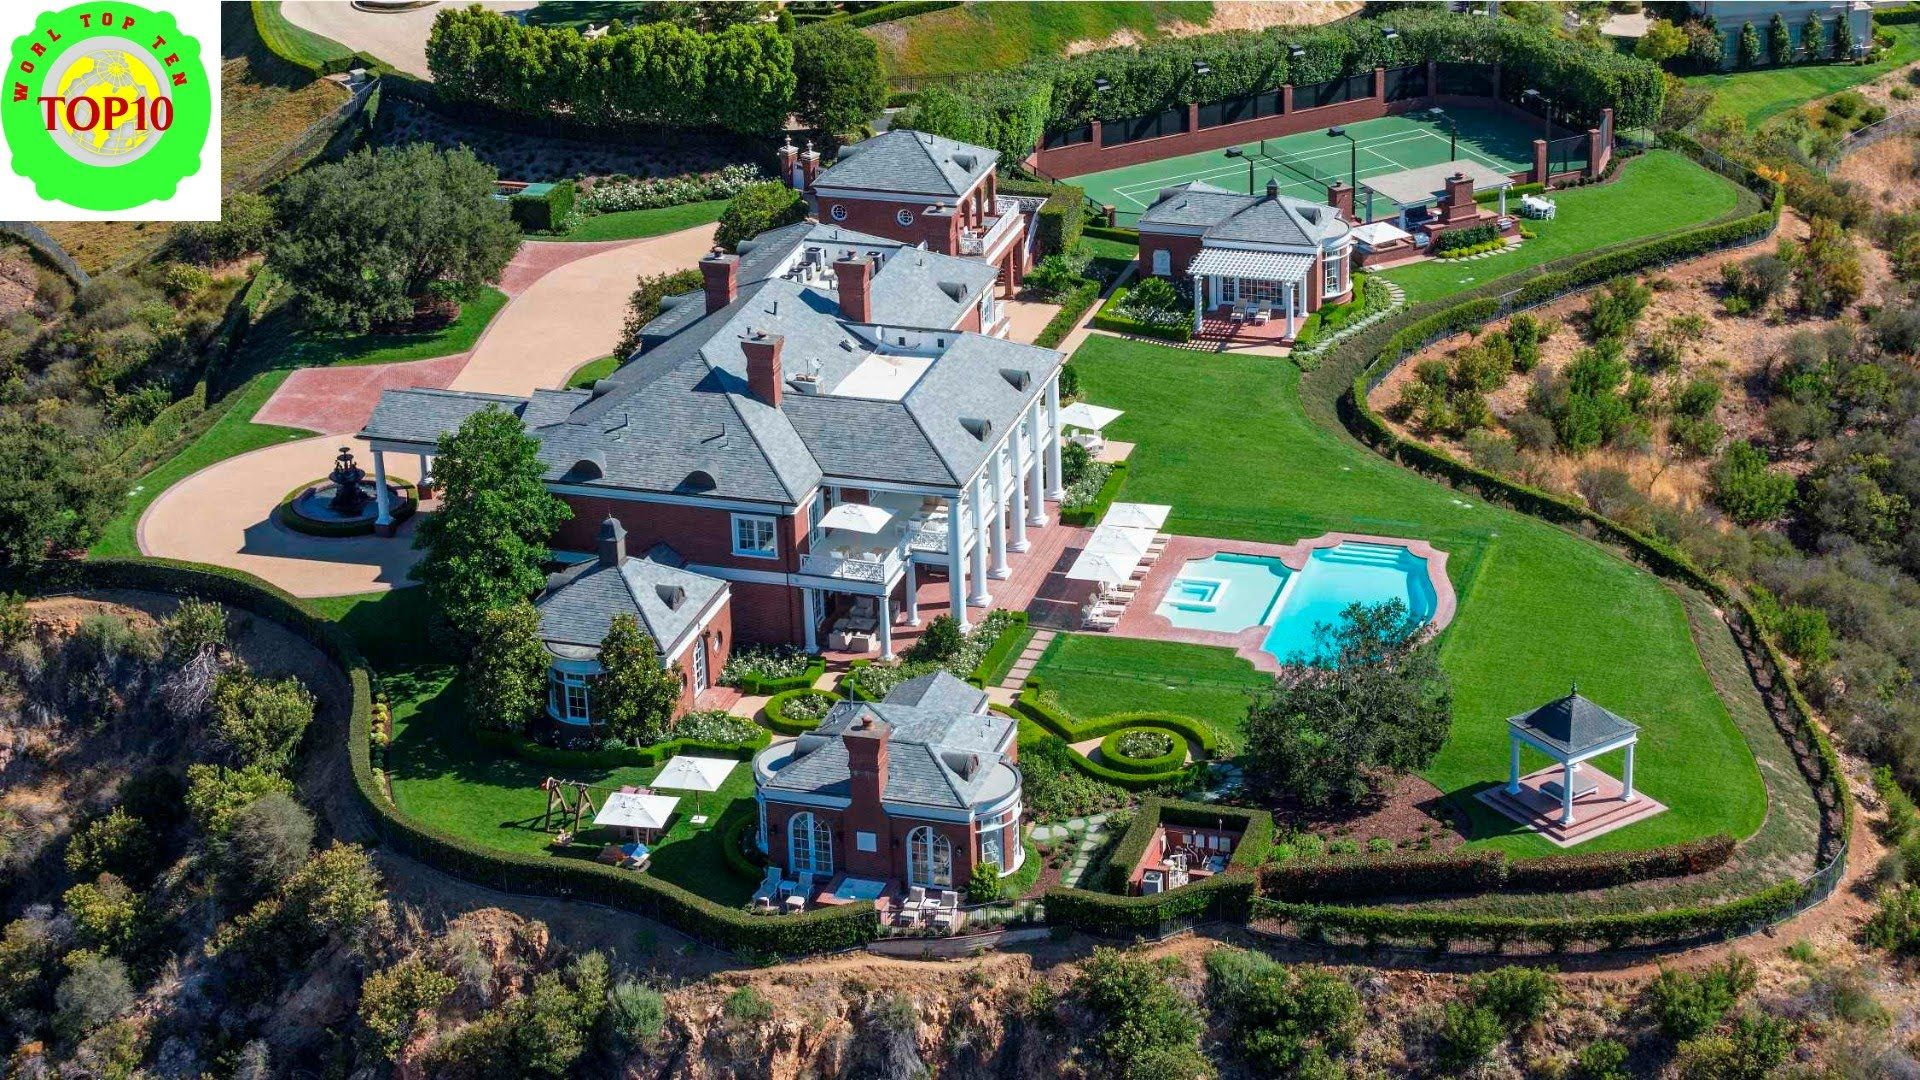 Most Biggest Houses In The World Top 10 Most Expensive Houses In Luxury House Designs Extravagant Homes Country Mansion